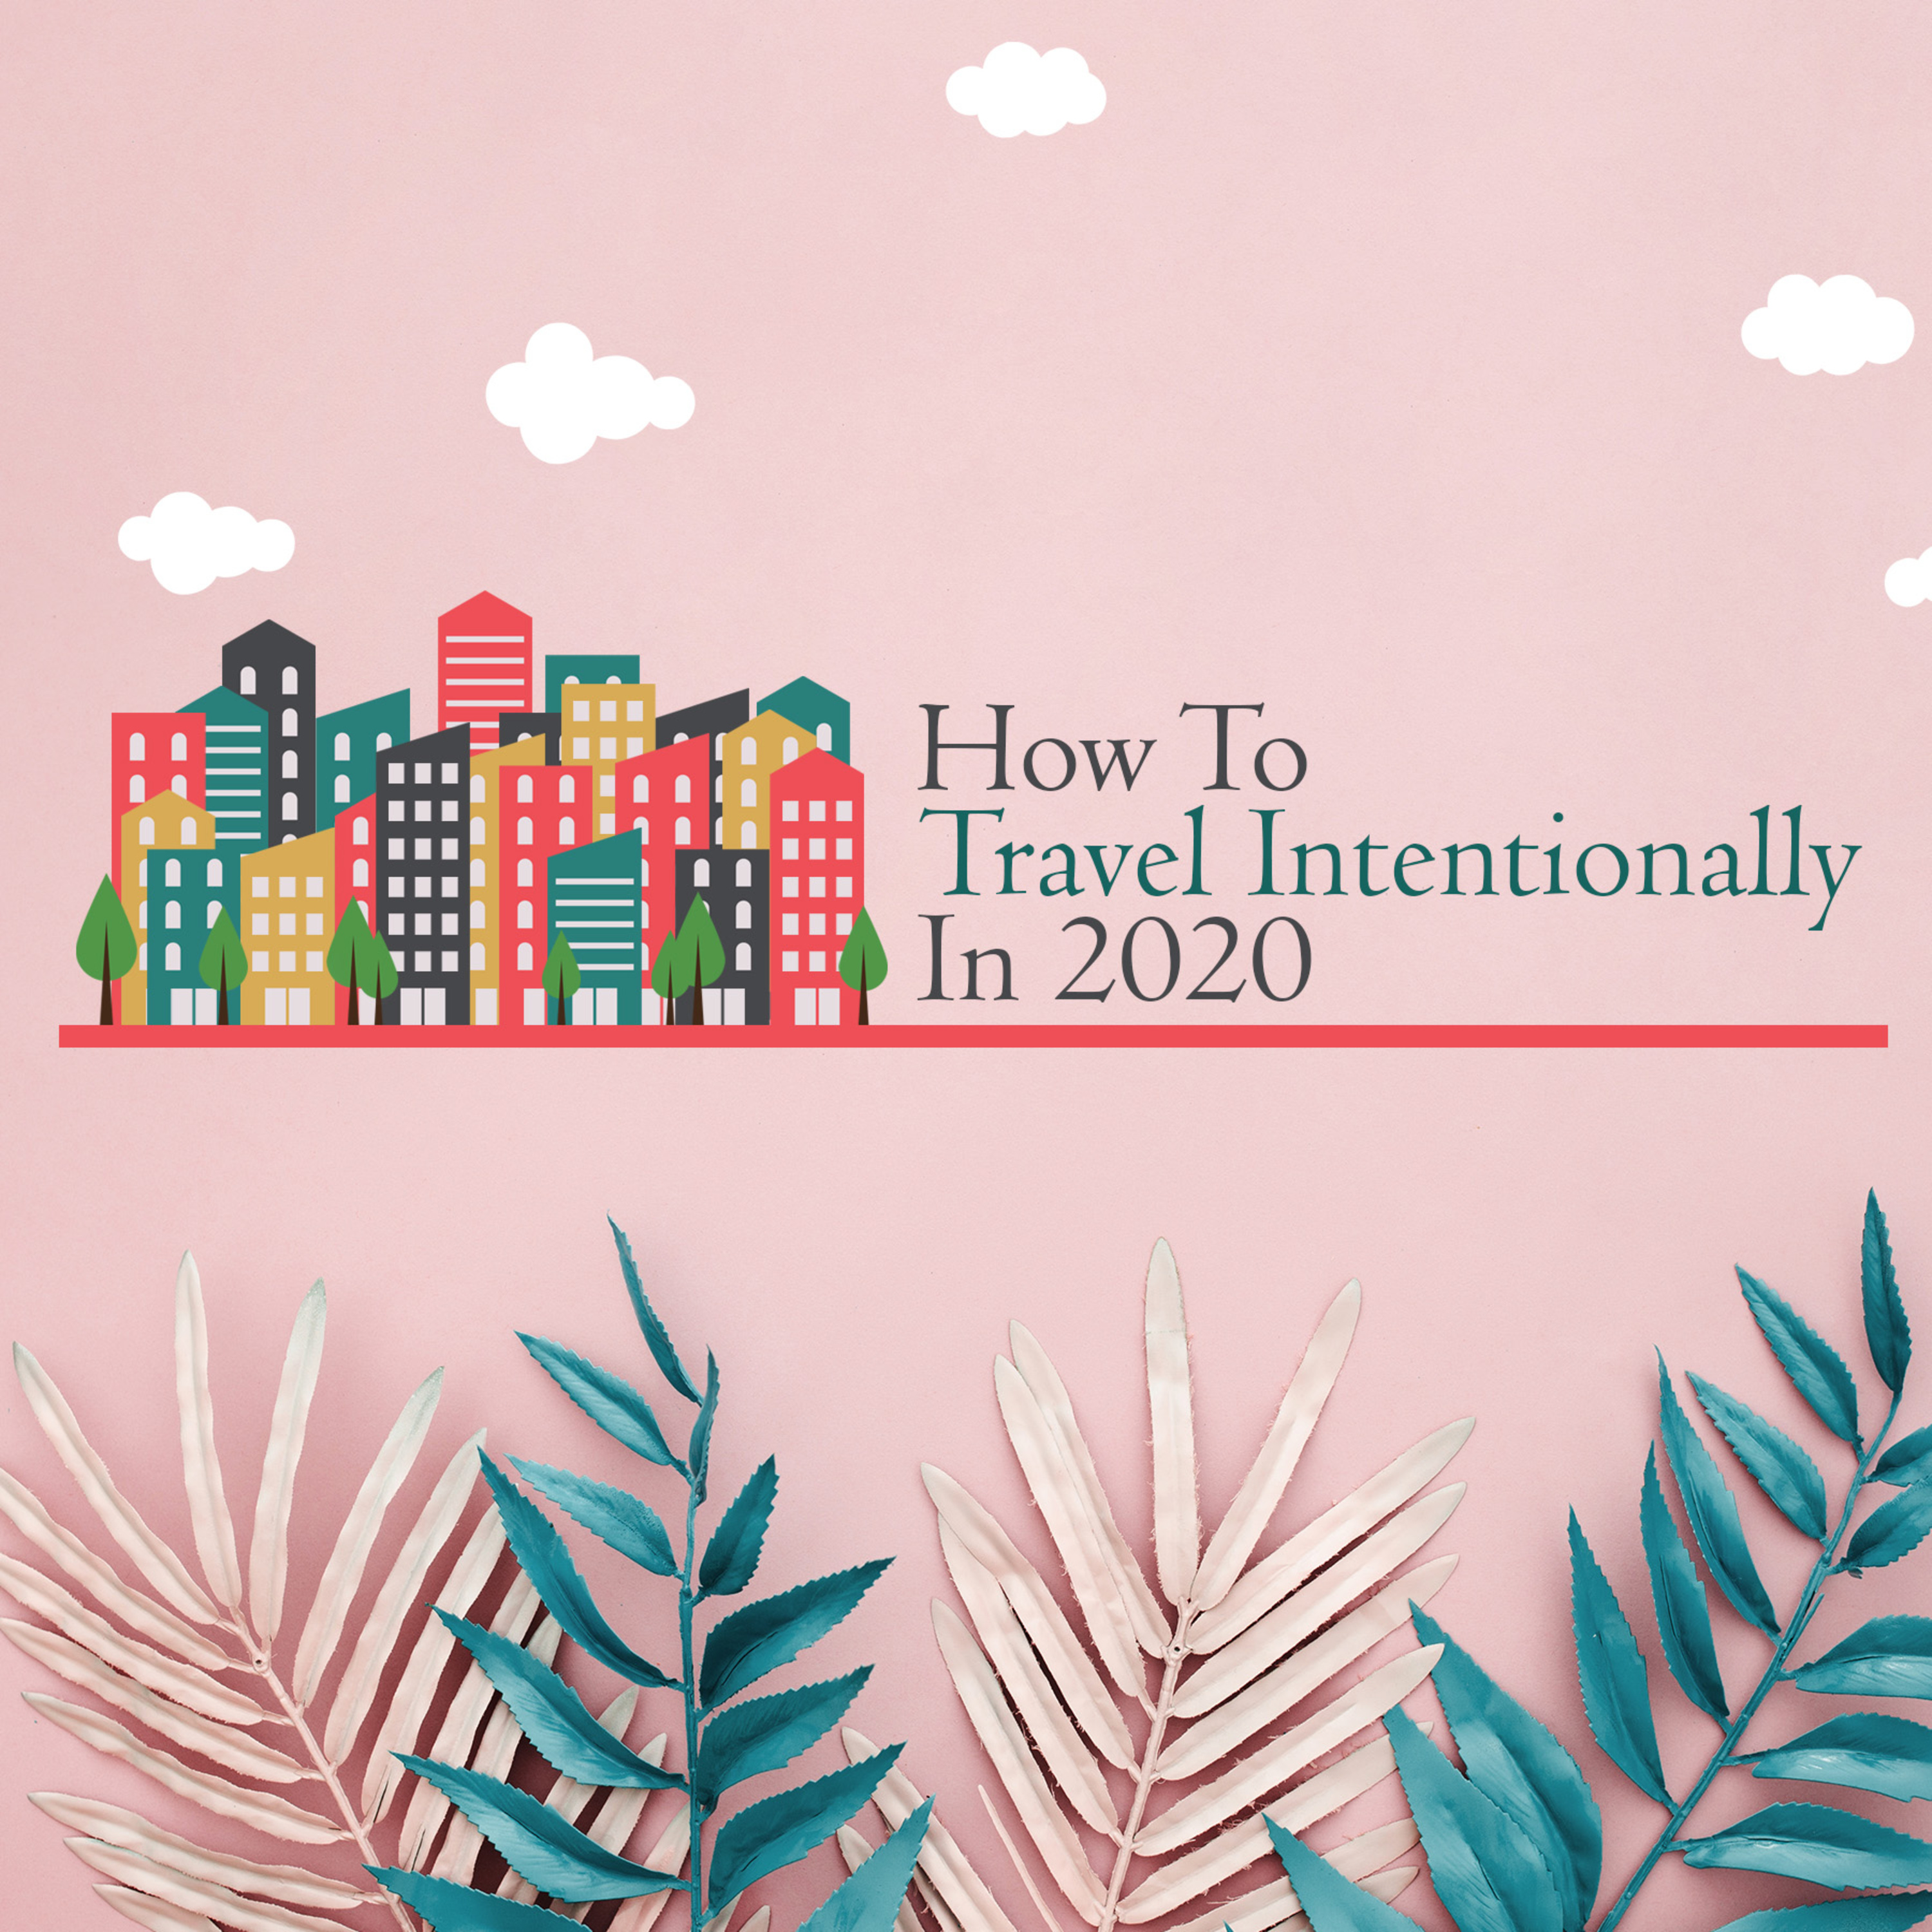 How To Travel Intentionally in 2020